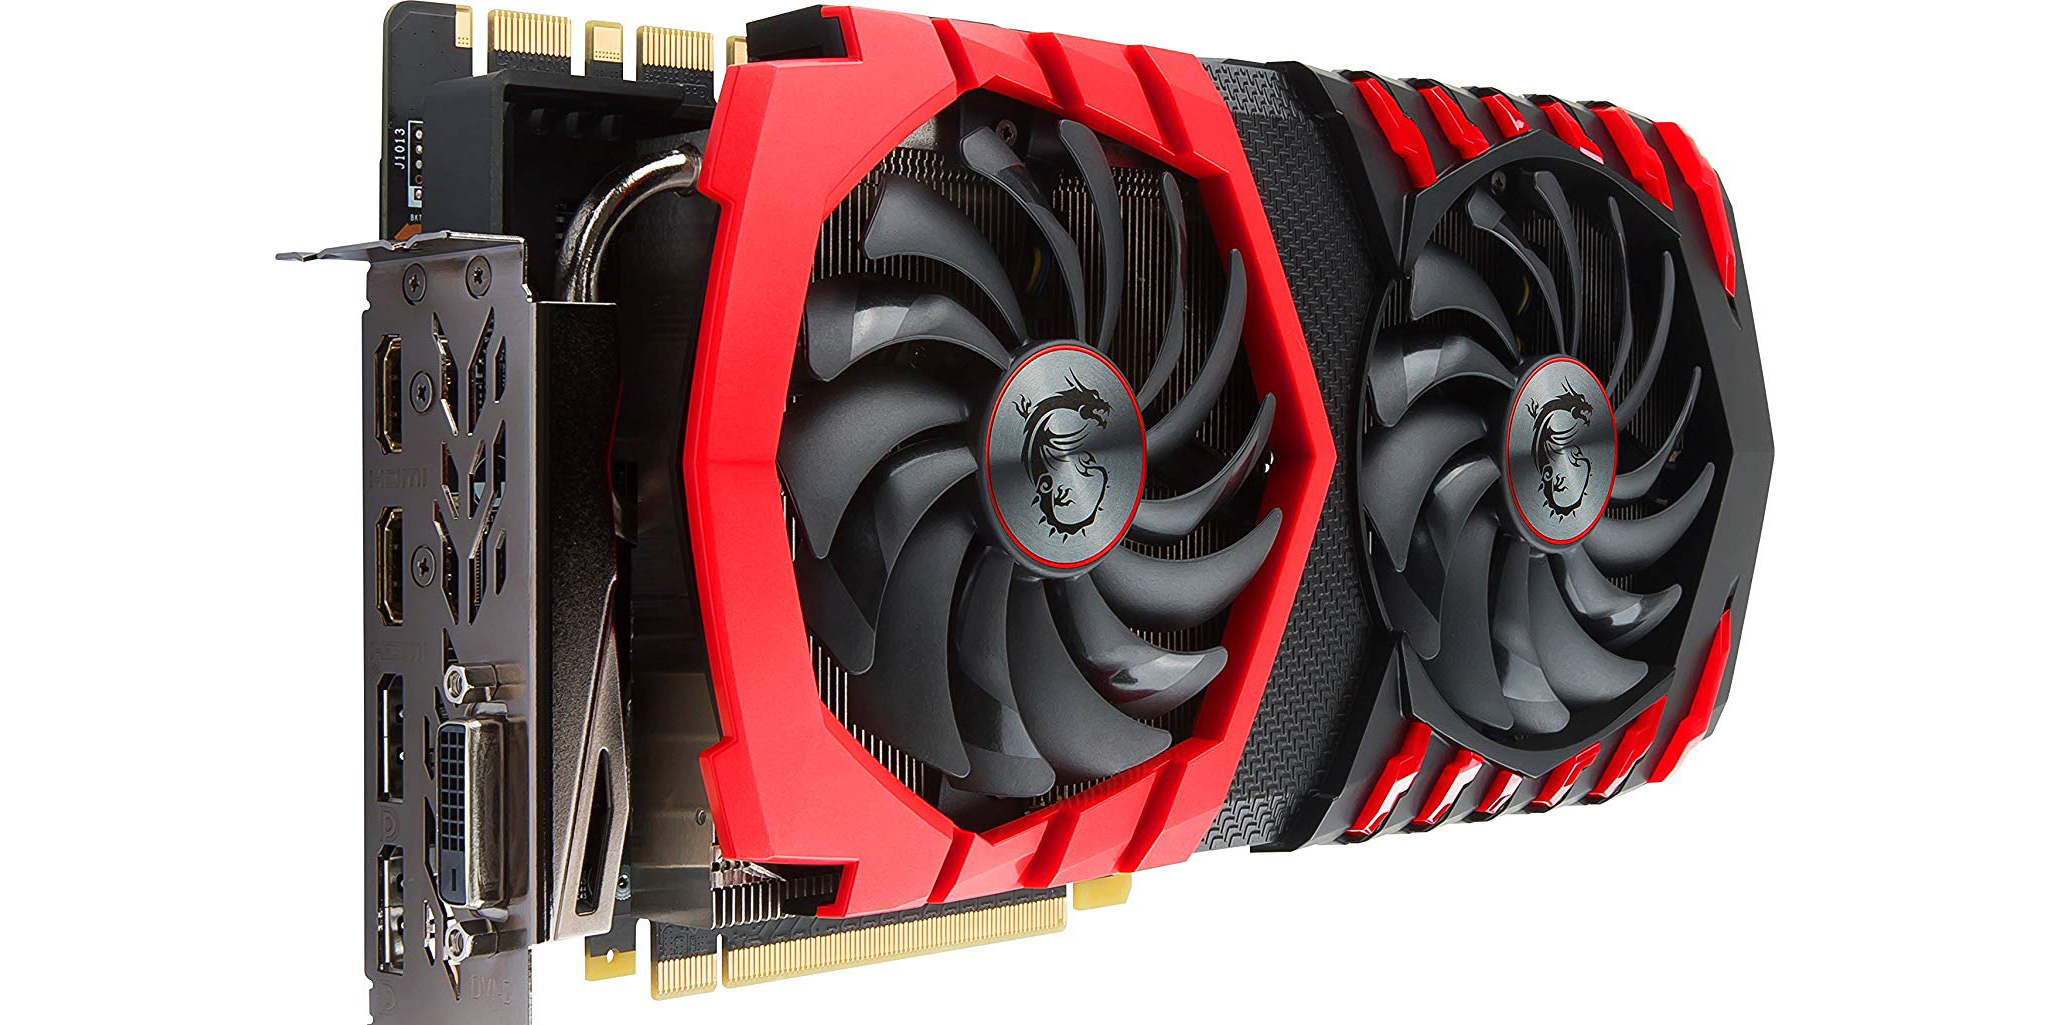 MSI Graphics Cards For Gaming